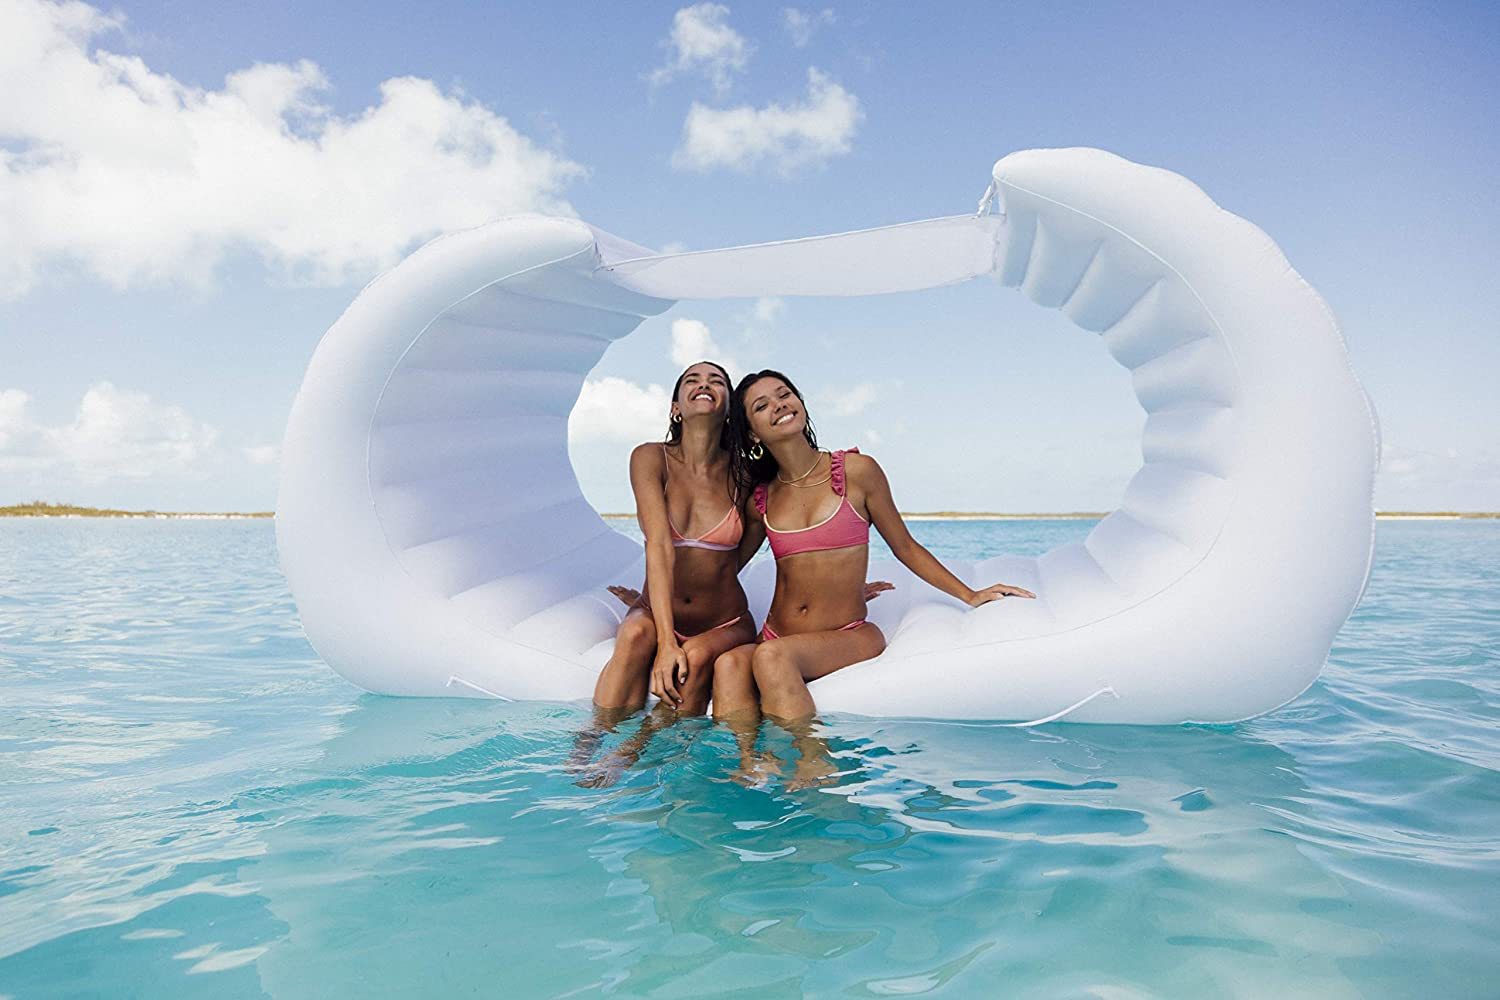 FUNBOY Giant Luxury Inflatable Float Raft for Pool Parties